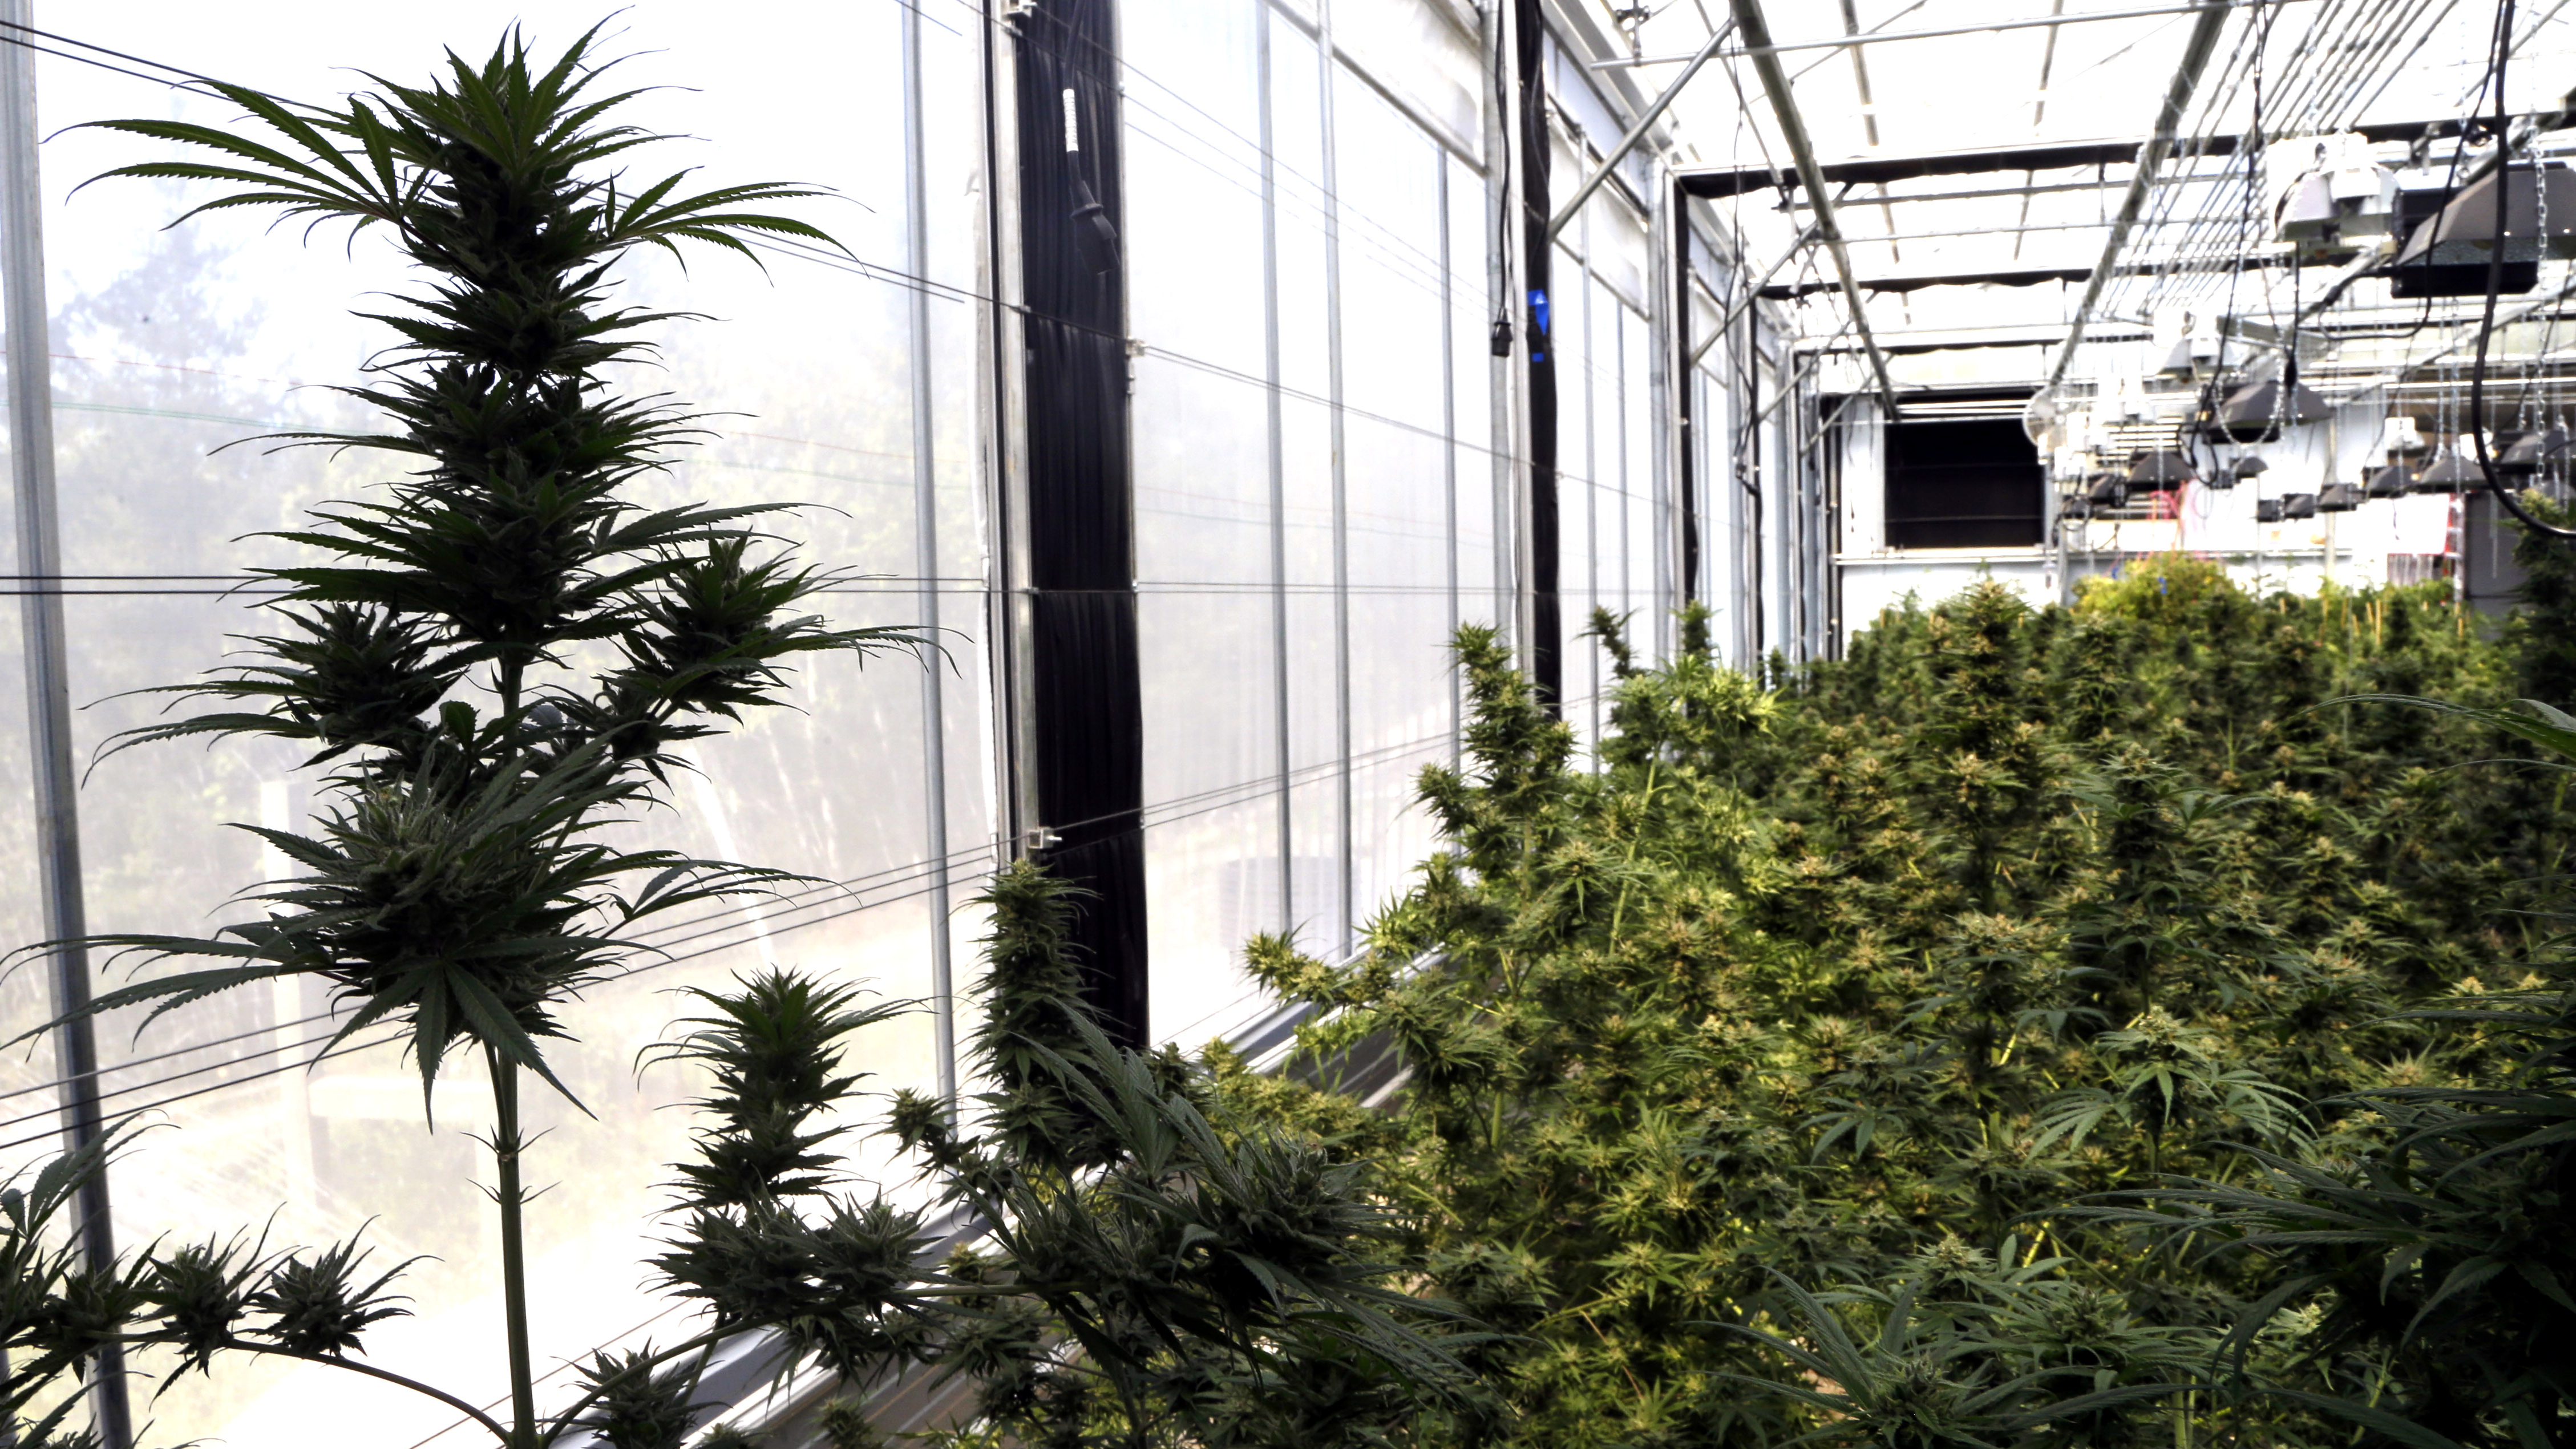 FILE - In this April 24, 2018, file photo, marijuana plants are shown at a facility in Springfield, Ore.